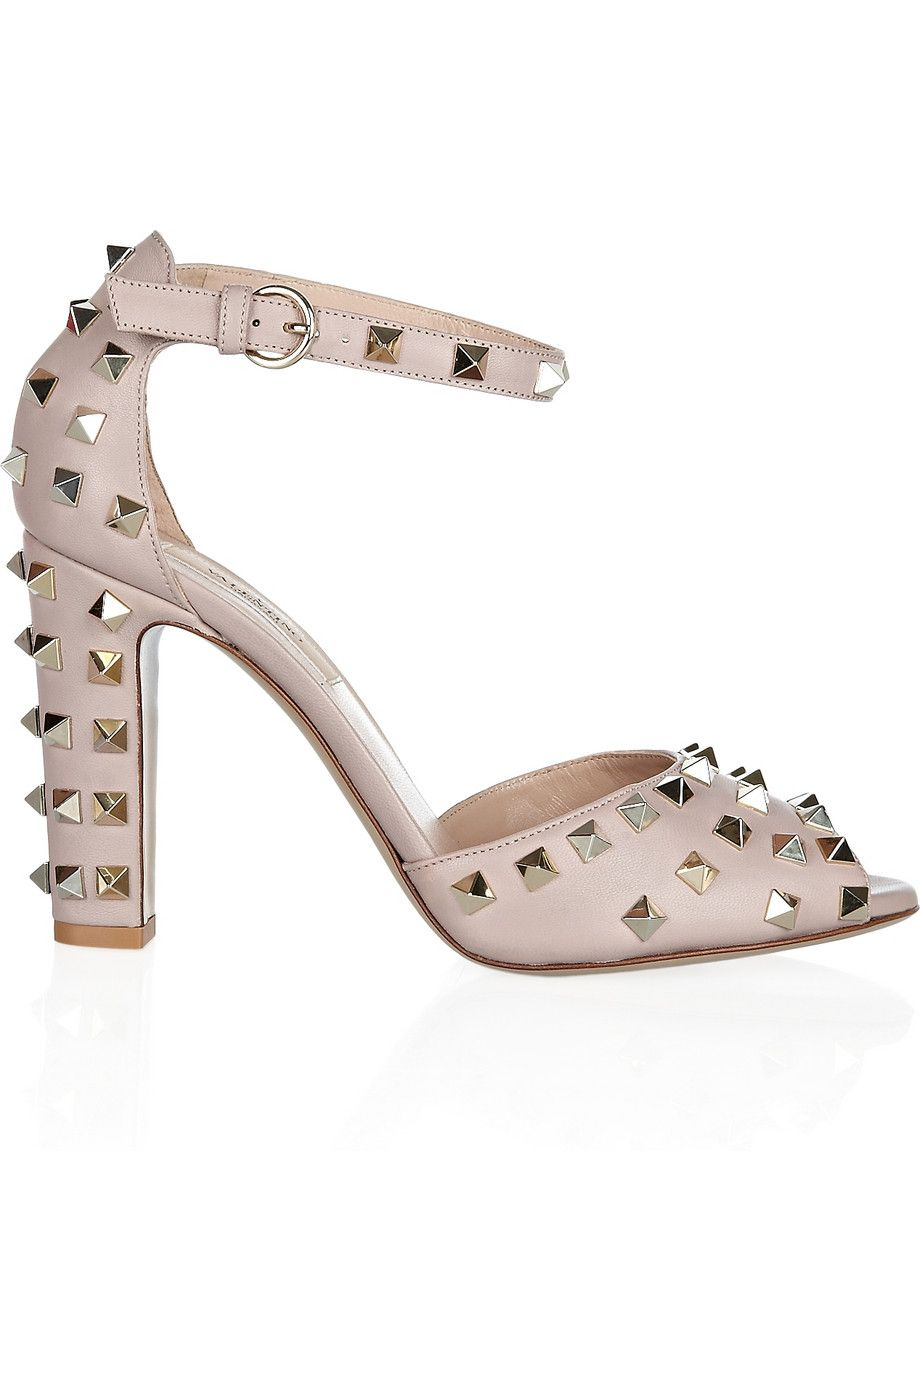 Valentino | Studded leather sandals | NET-A-PORTER.COM